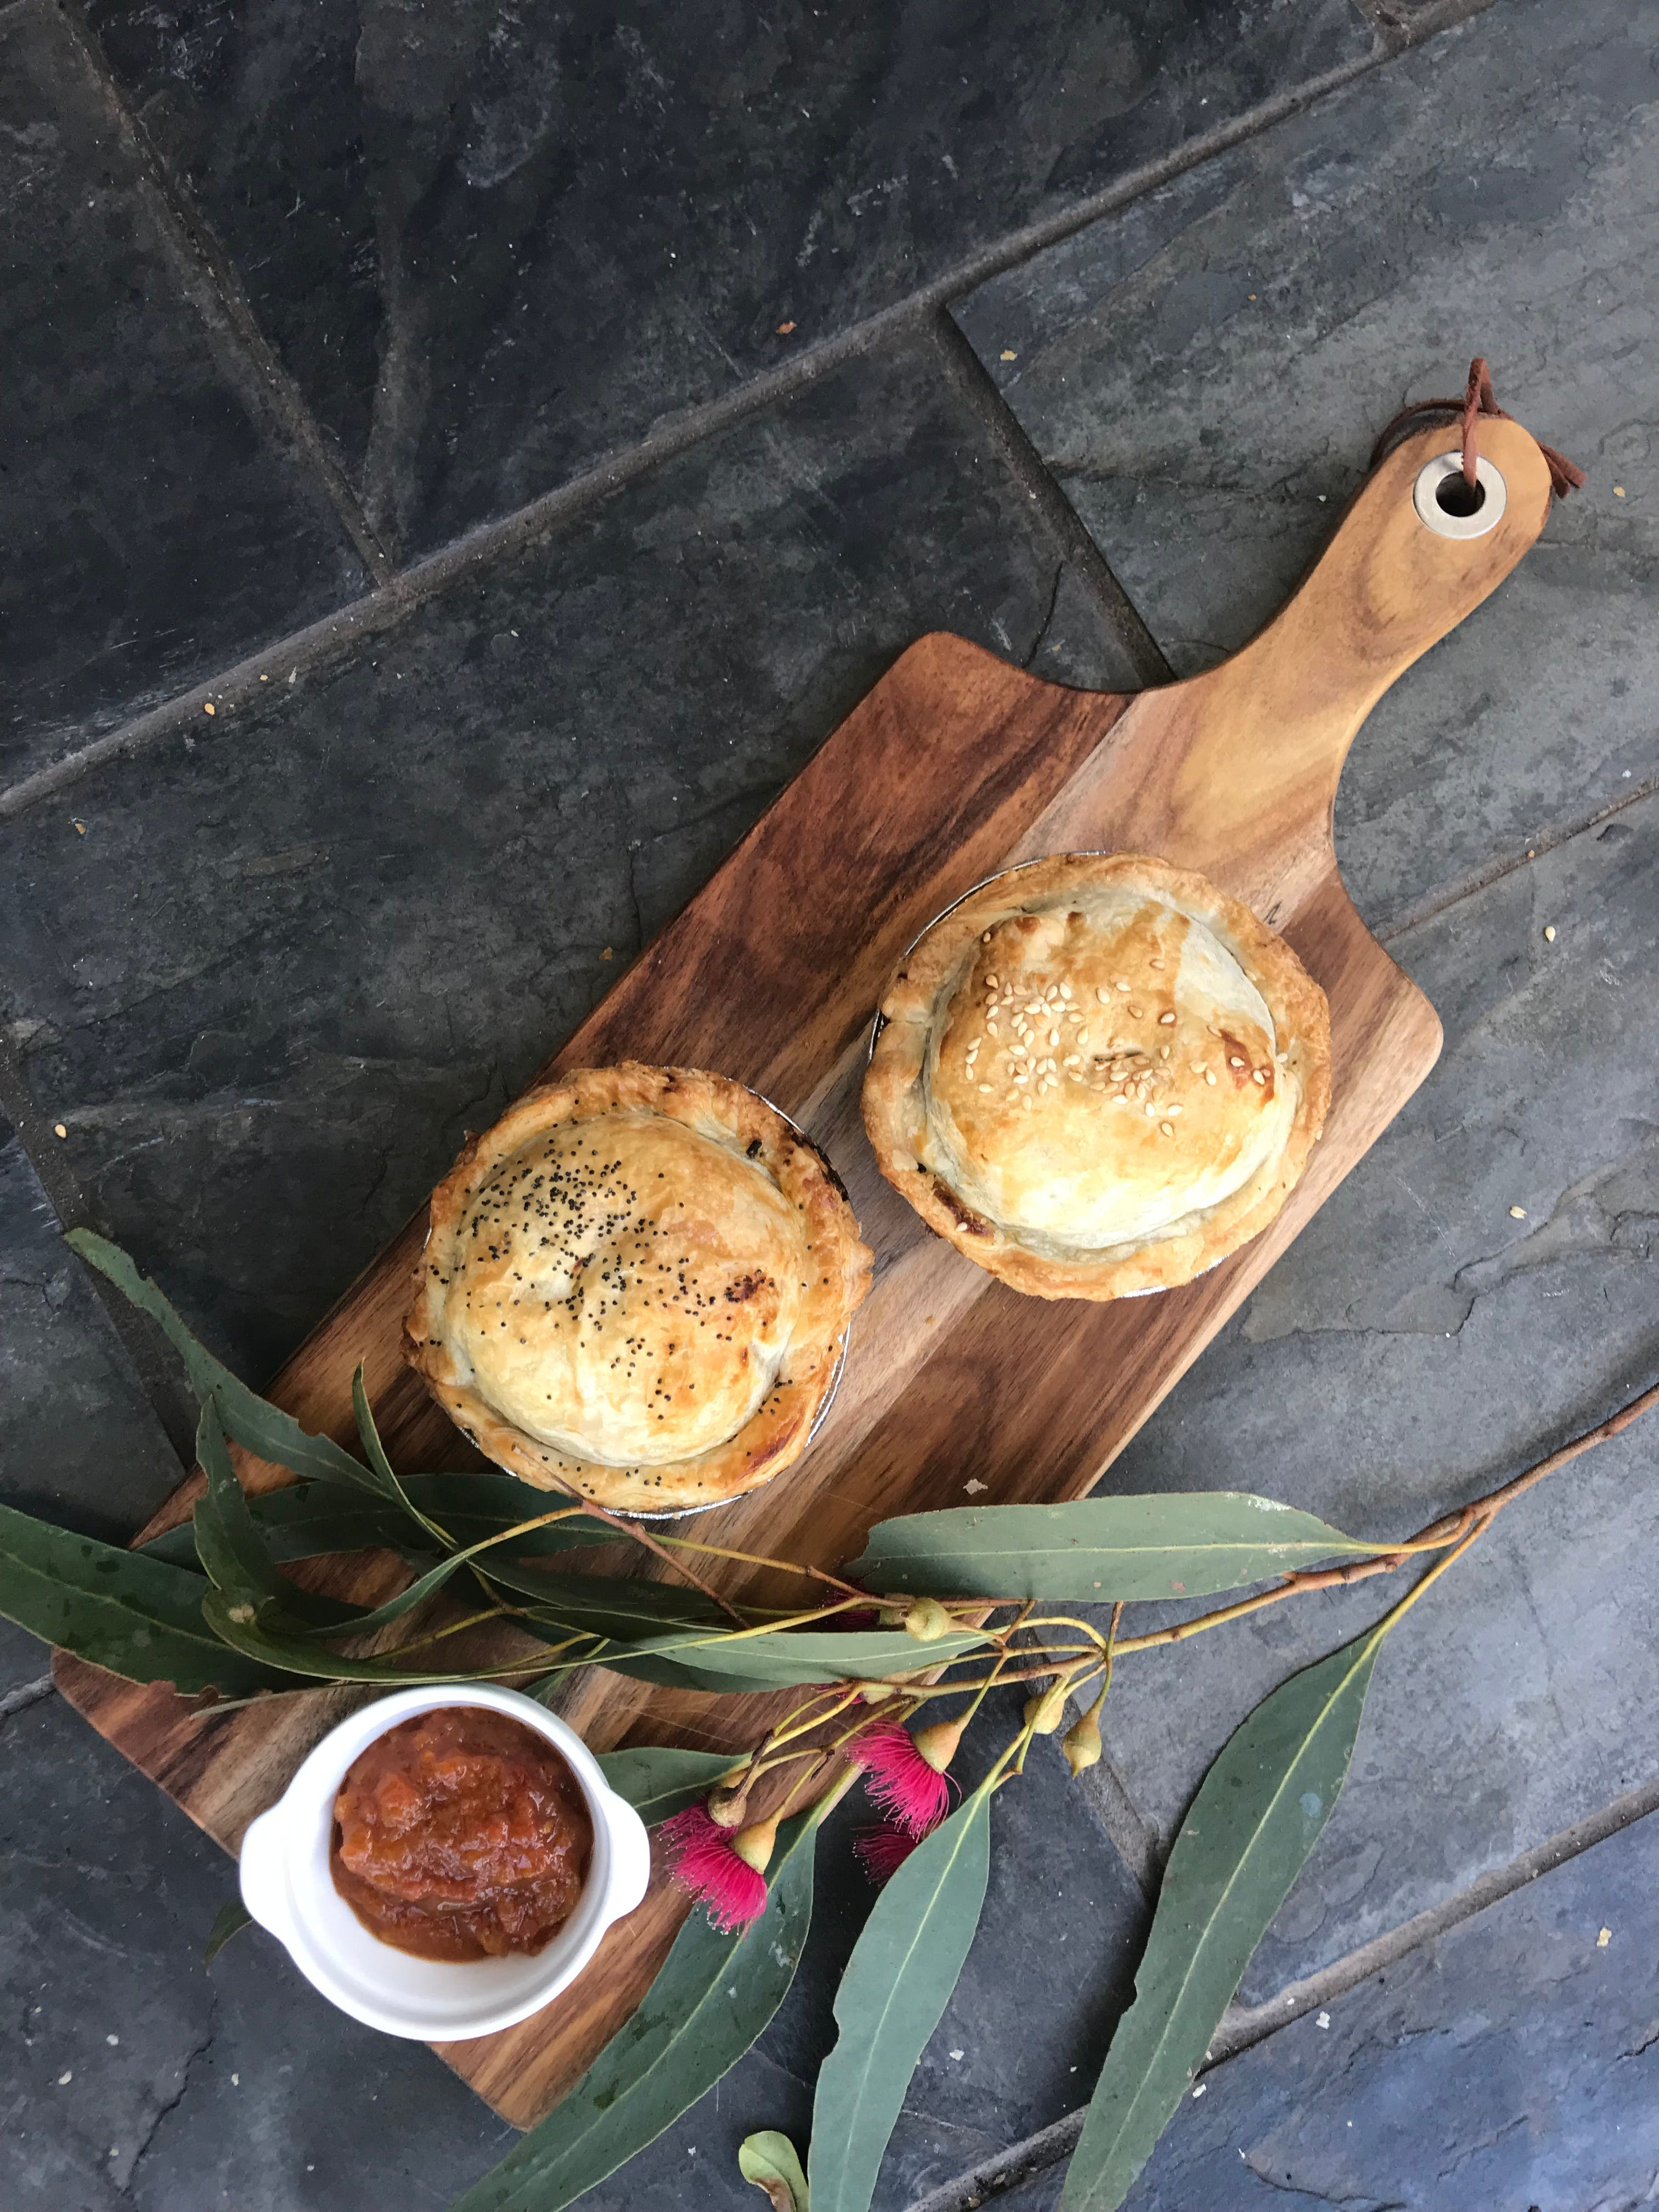 Aged Wine and Vintage Pies - WA Accommodation